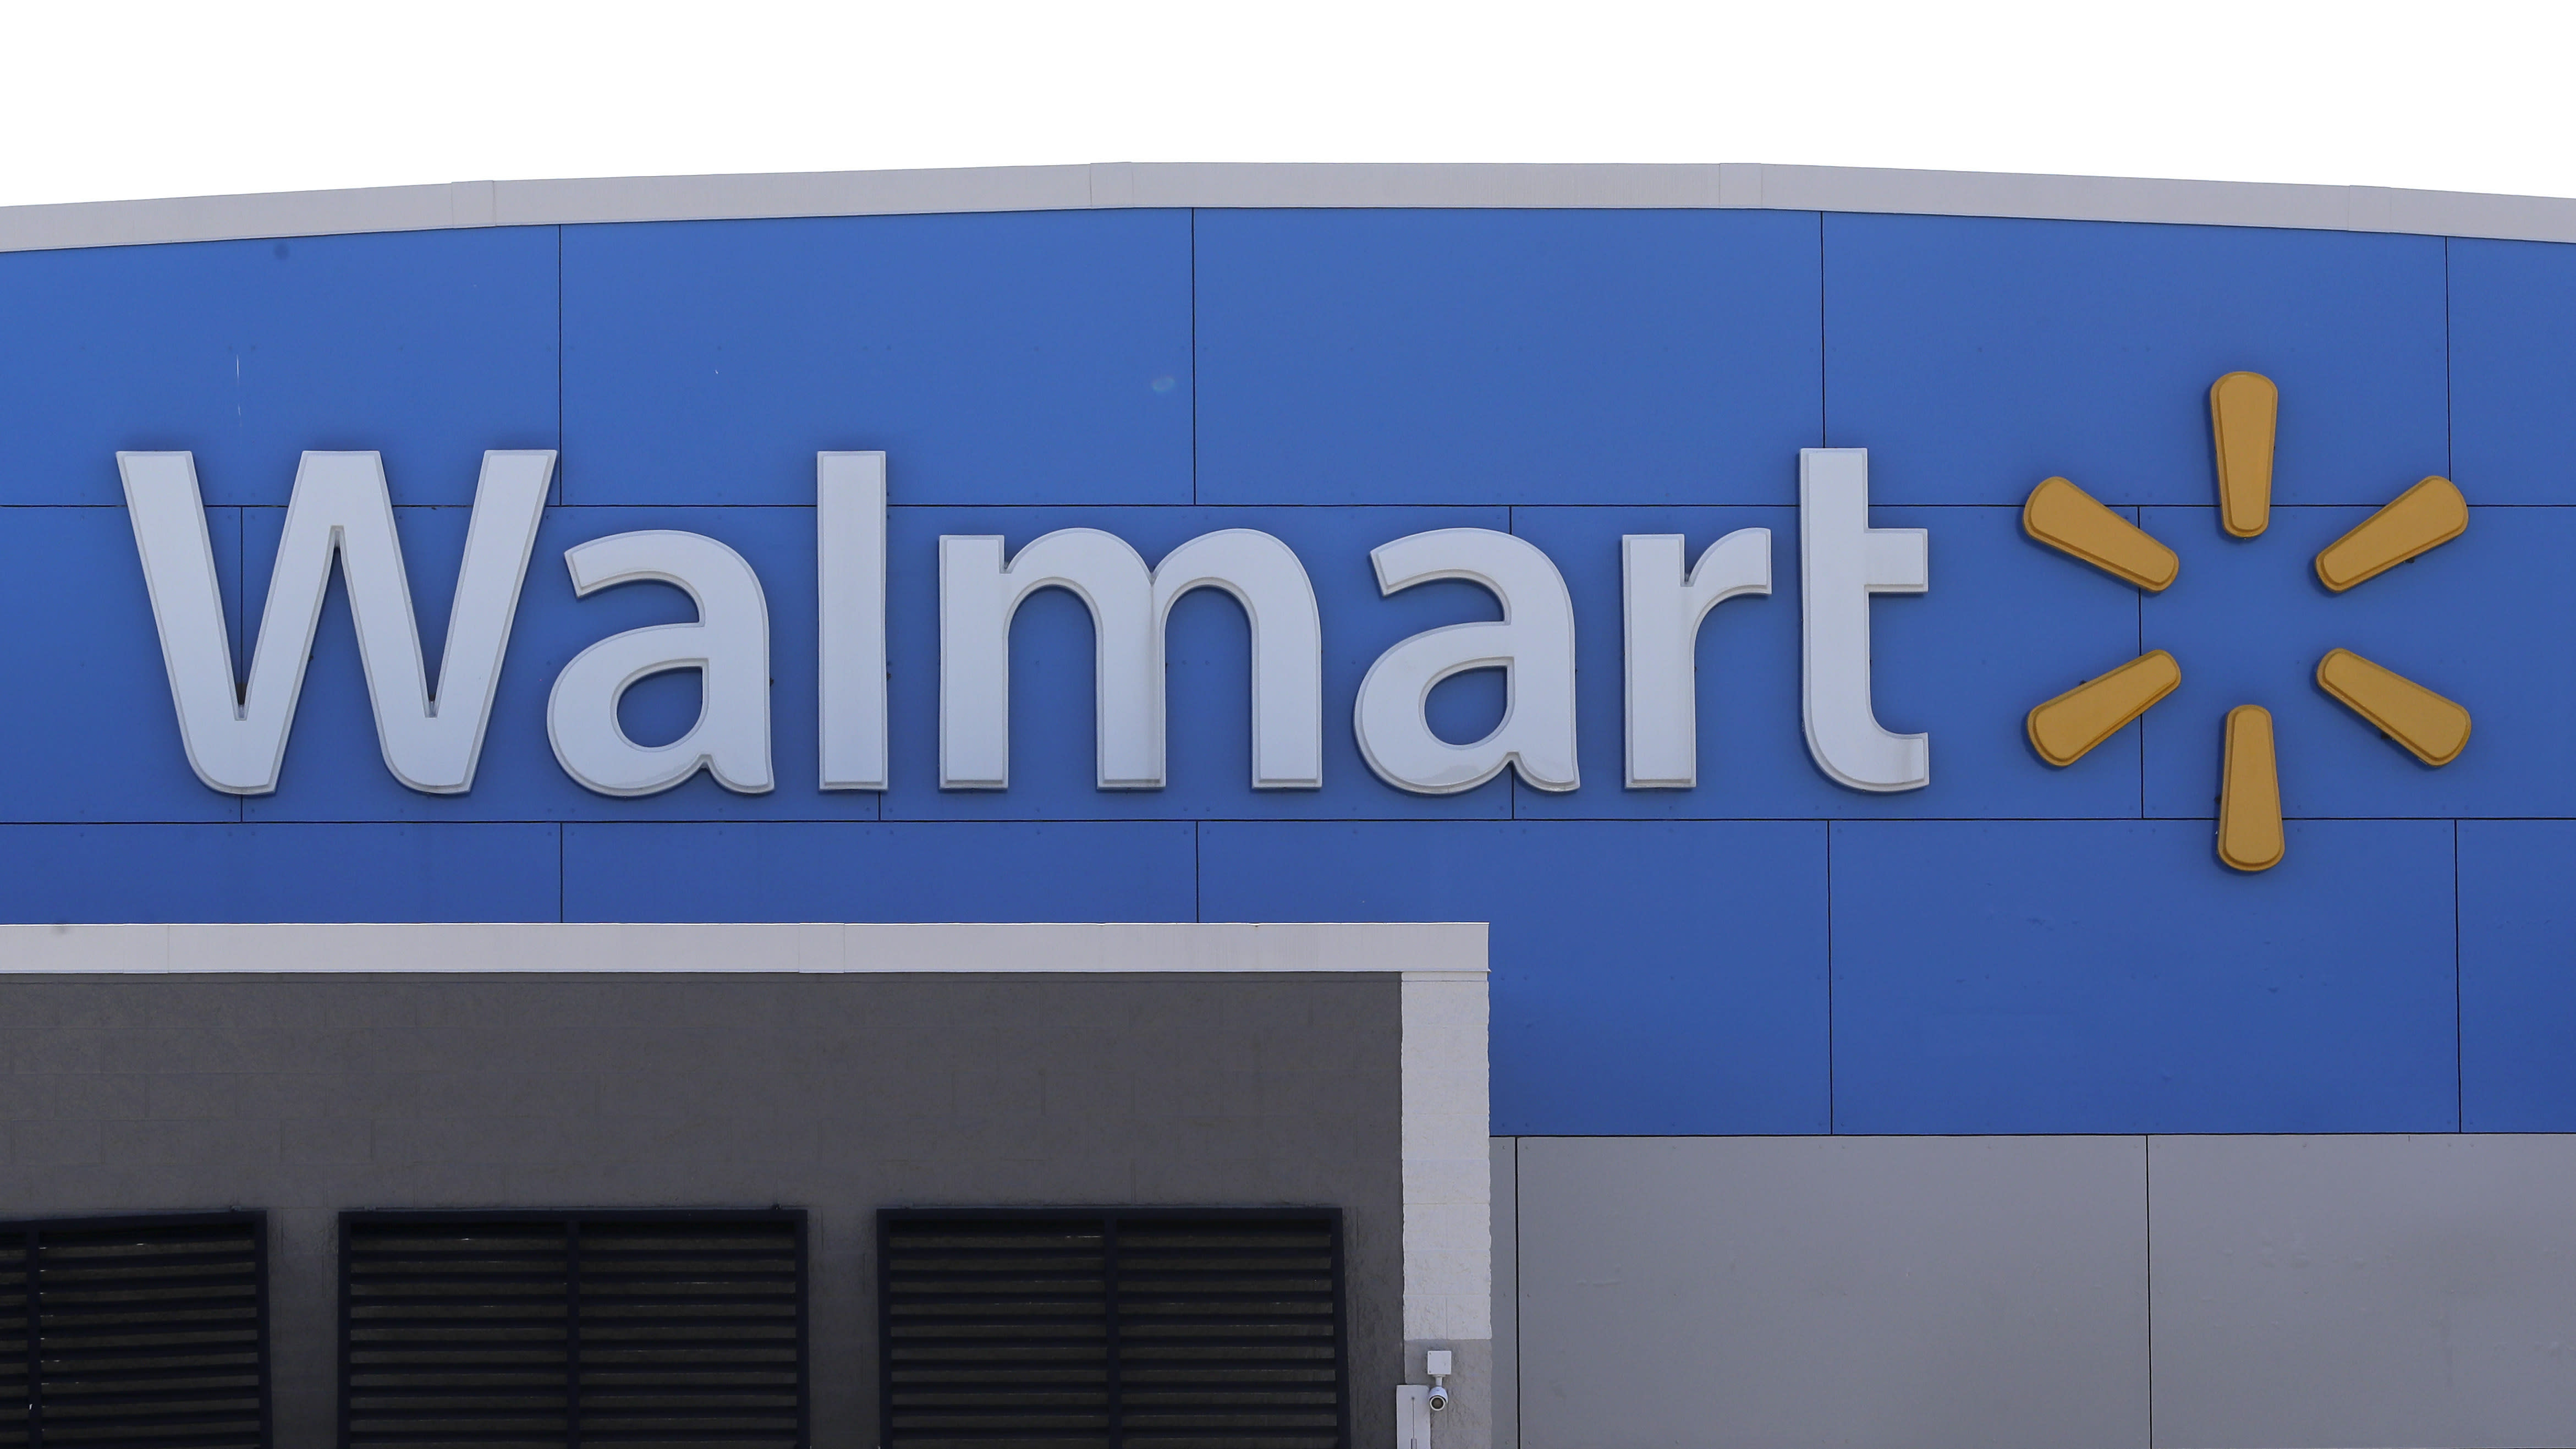 Walmart expands grocery delivery [Video]